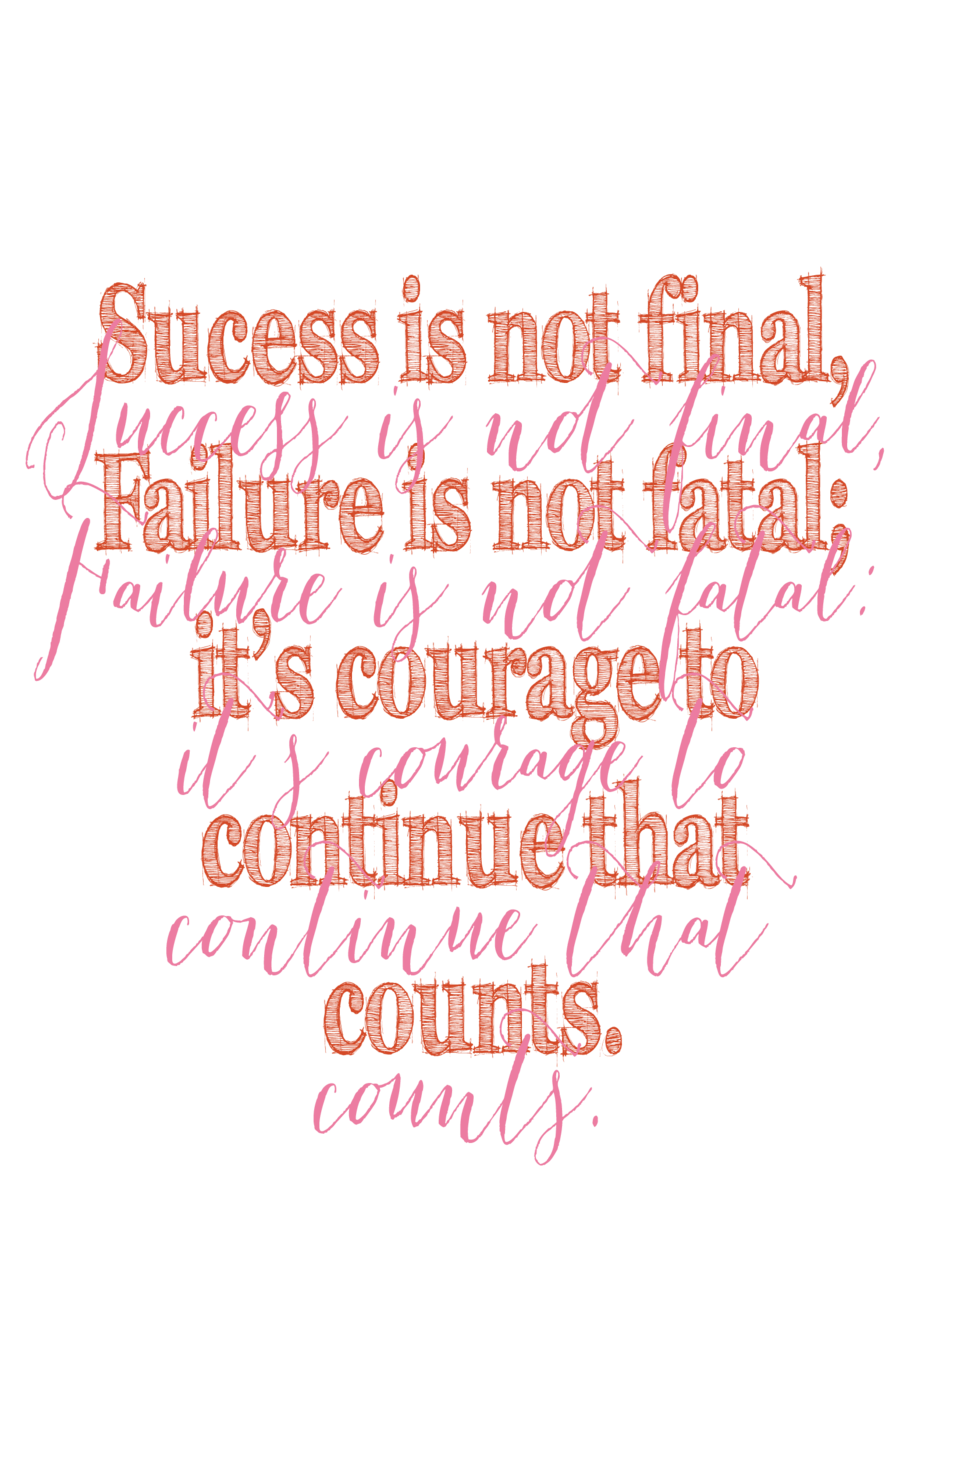 Sucess is not final, is not final, Success Failureis not fatal  is not fatal  Failure it   s courage to to it   s courage ...